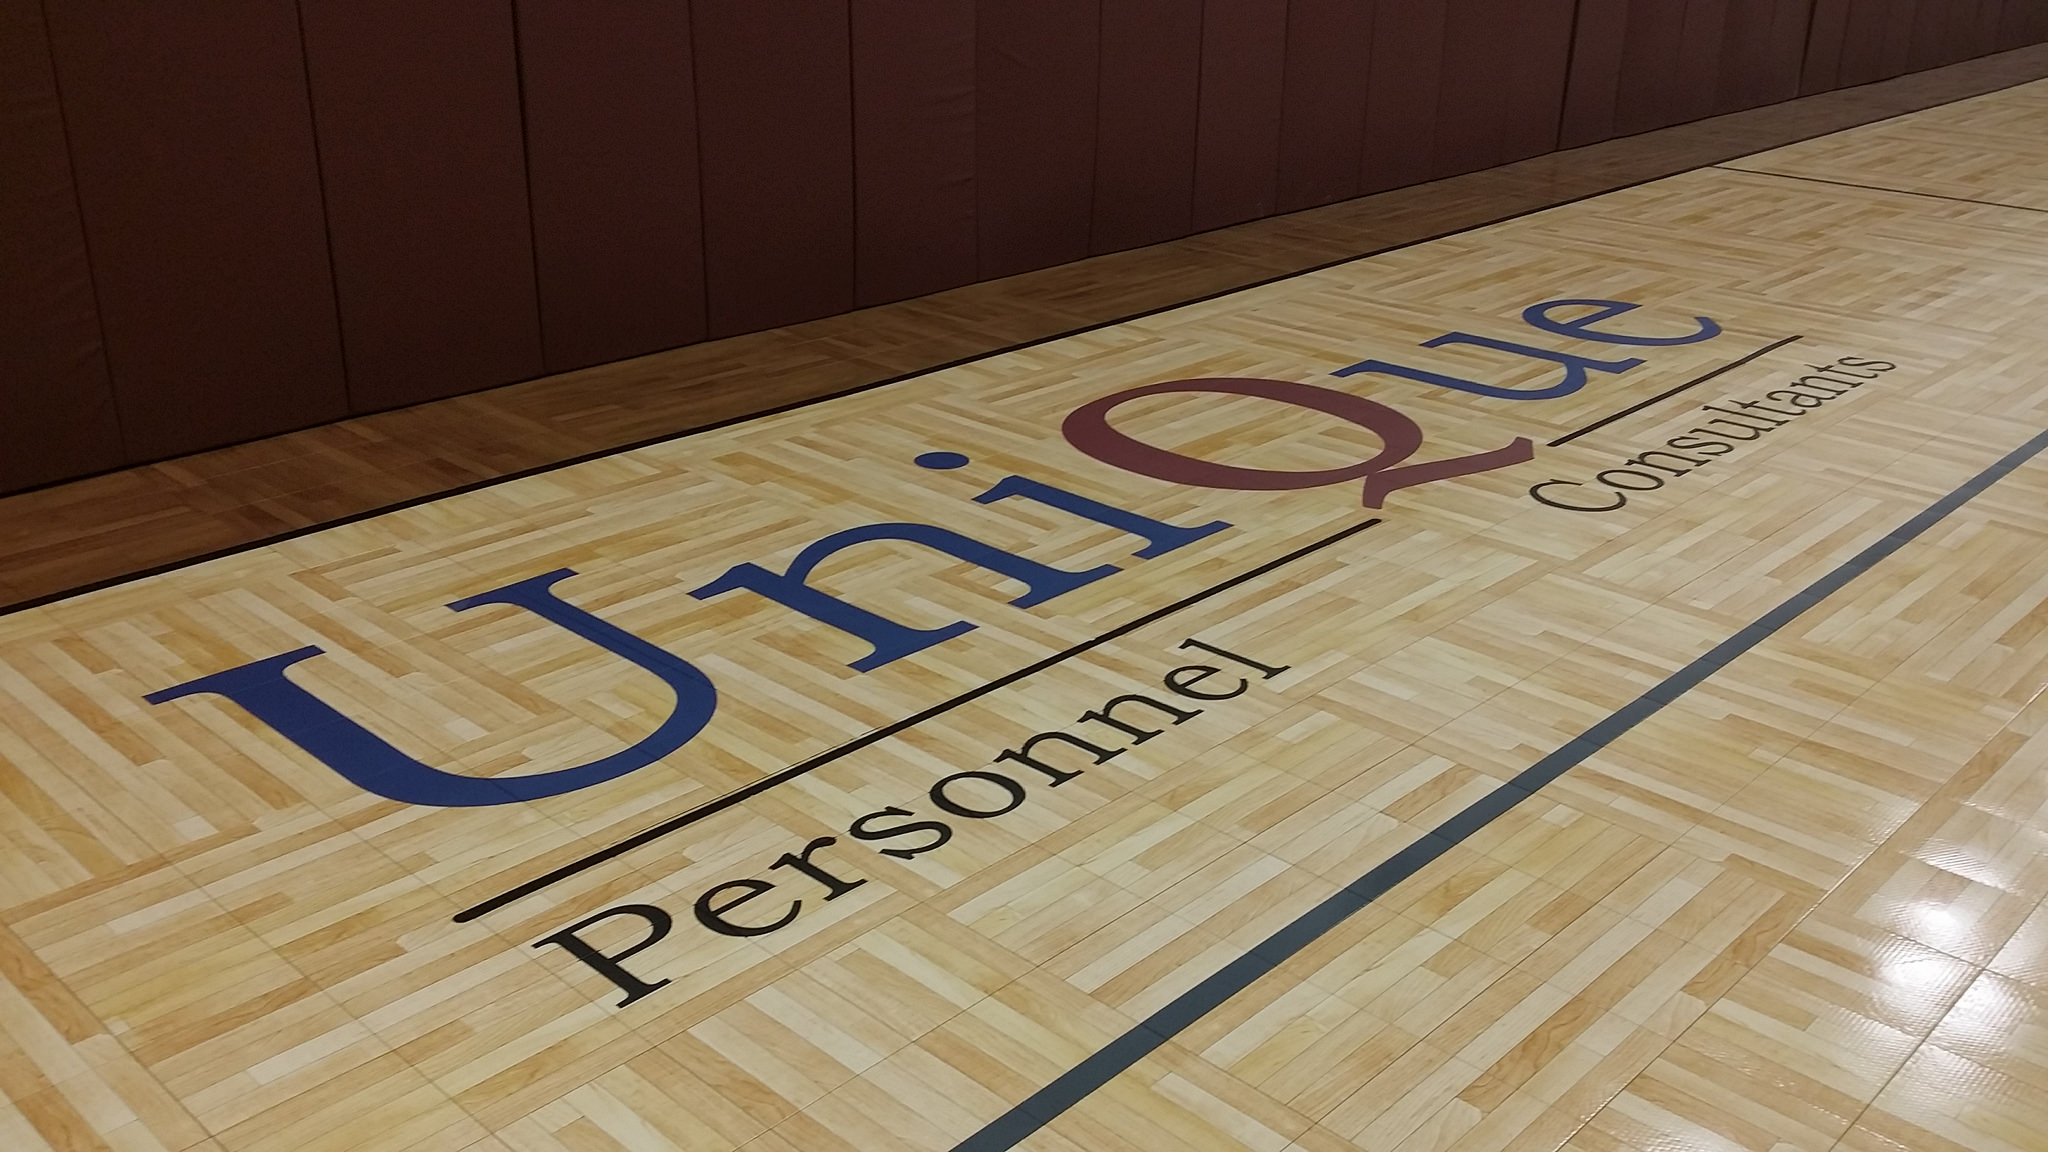 gym logo painting